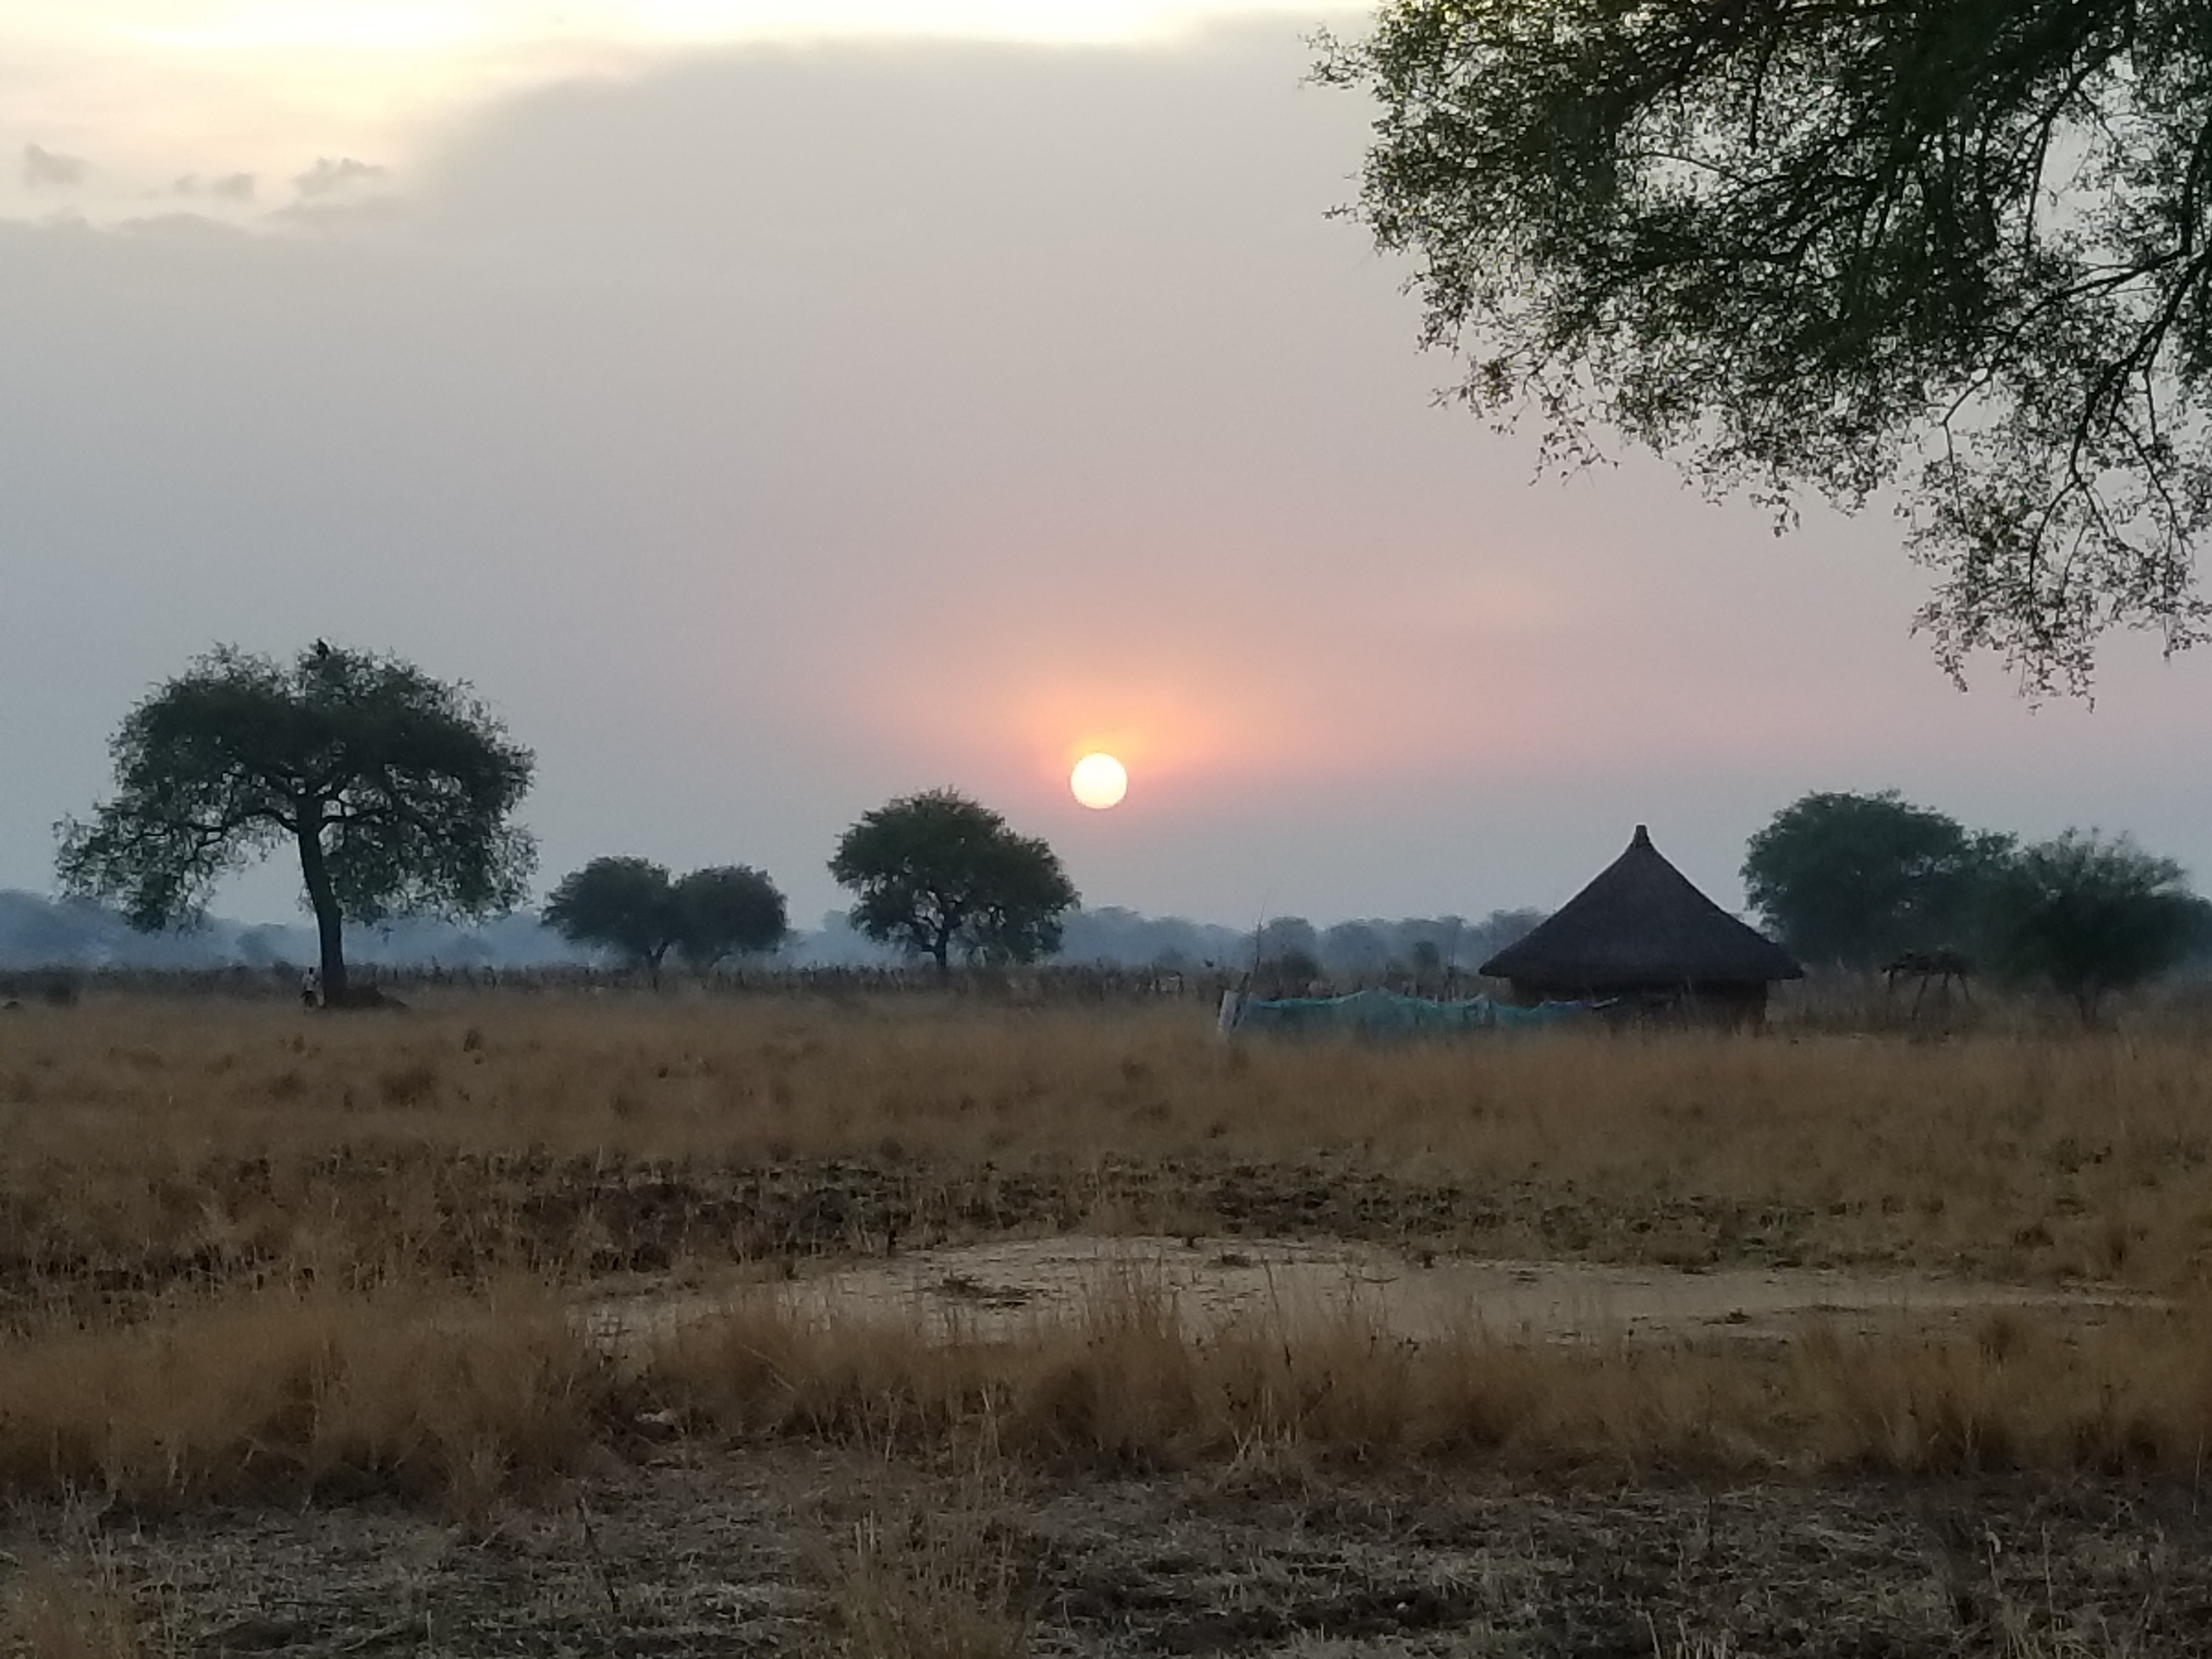 Prisoners in South Sudan find hope, forgiveness, and reconciliation through the Gospel